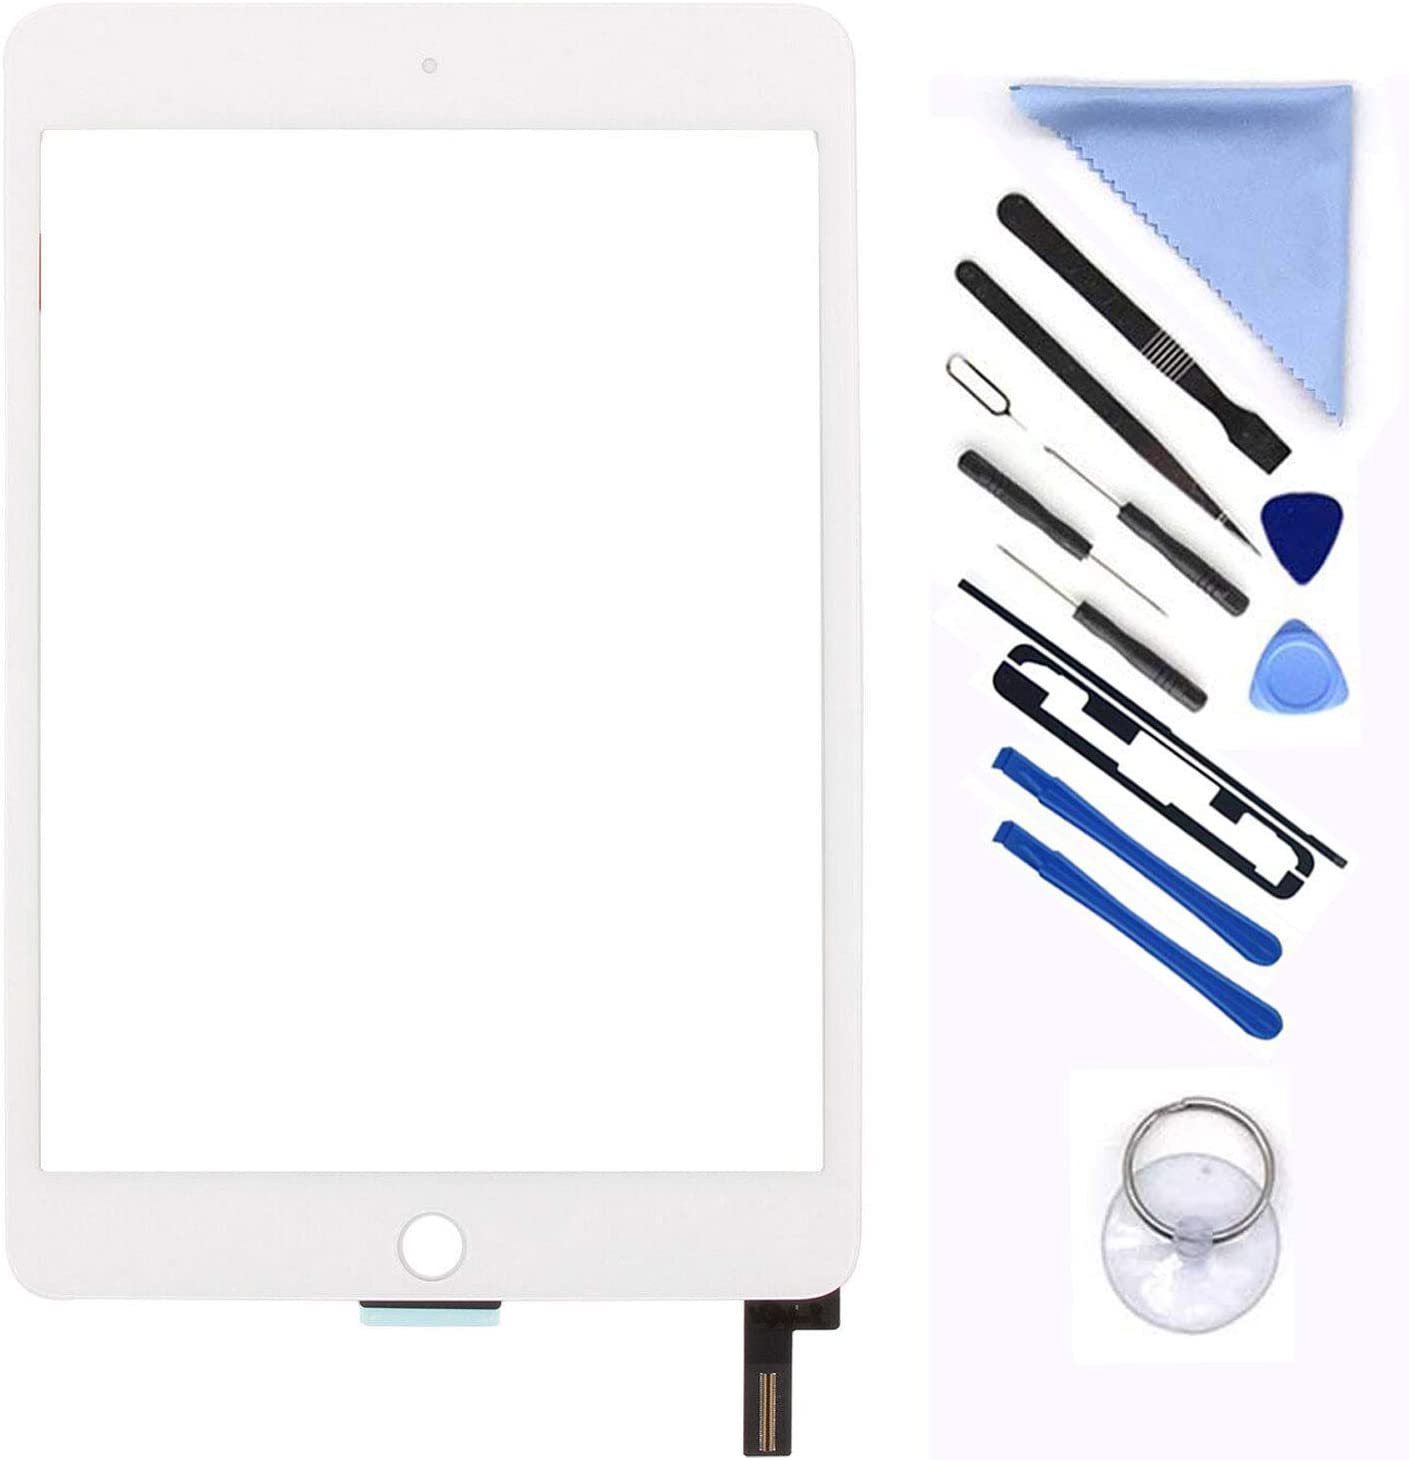 New Screen Replacement For iPad mini 4 7.9 inch A1538 A1550 Digitizer Glass Touch Screen Replacement and Pre-Installed Adhesive with Repair Tools Kit (Without Home Button,Not Include LCD) (White)